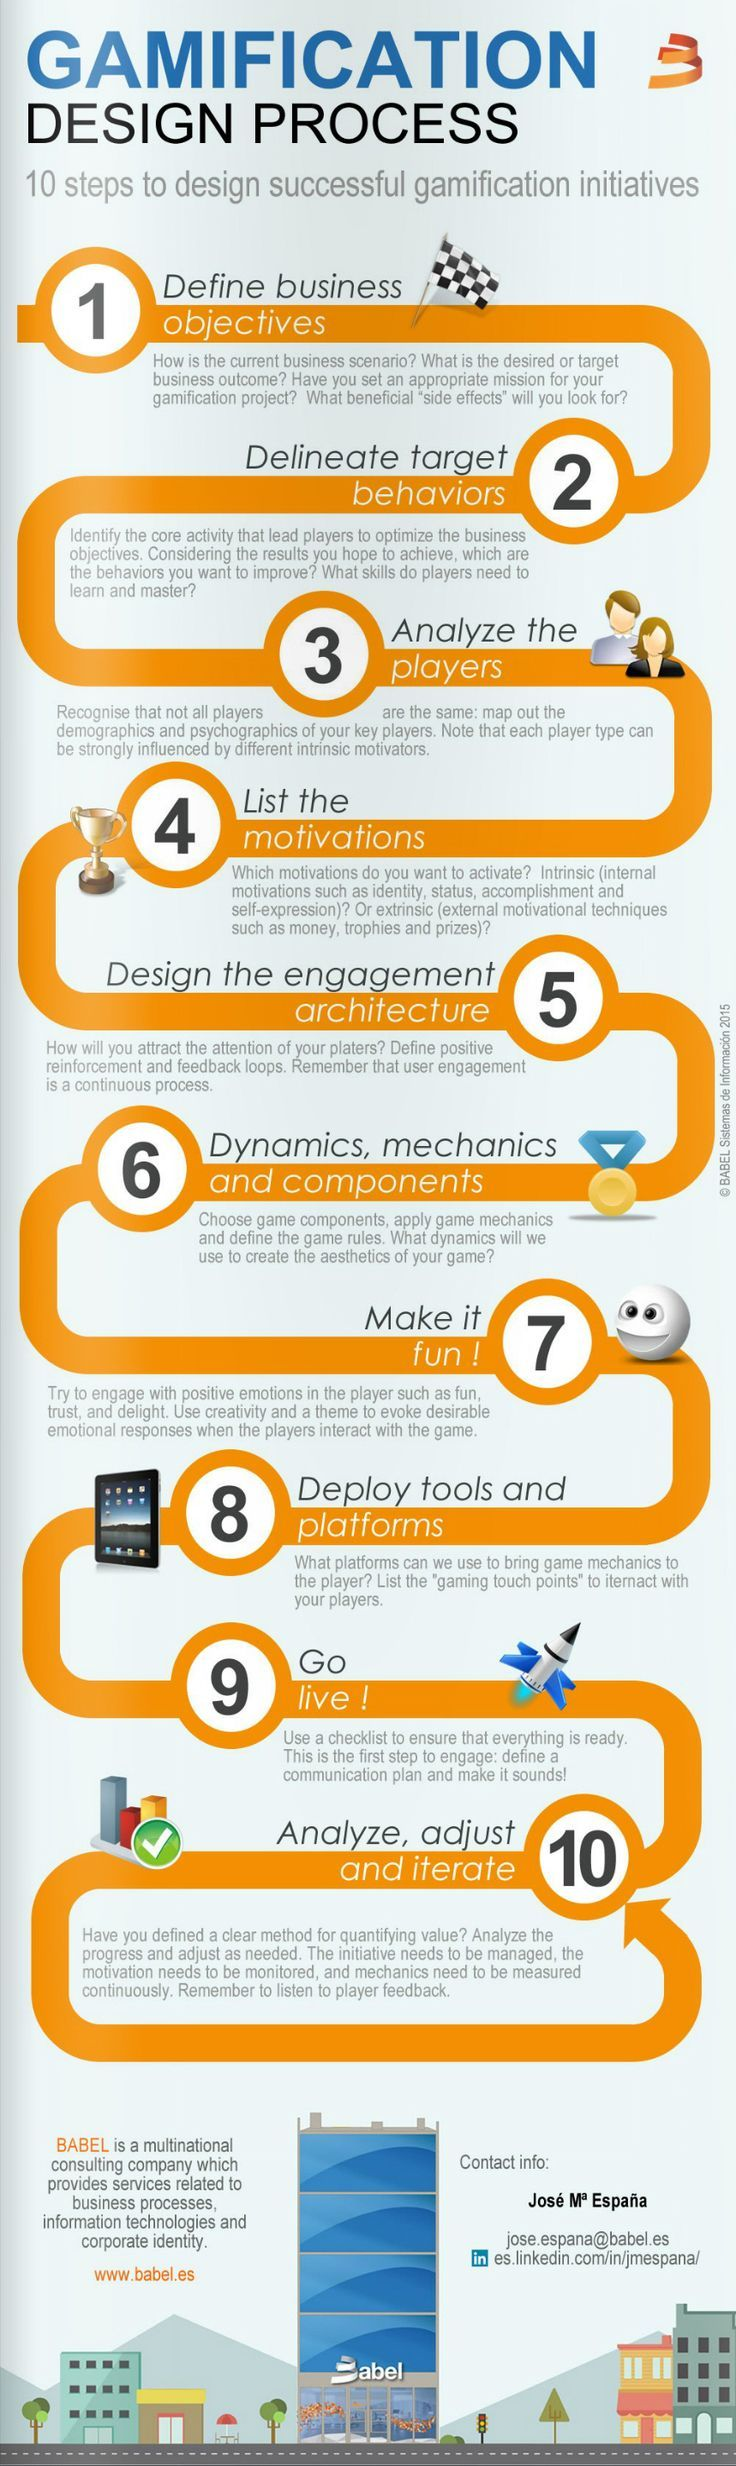 10 Steps To Design Successful Gamification Initiatives Gamification Education Gamification Instructional Design